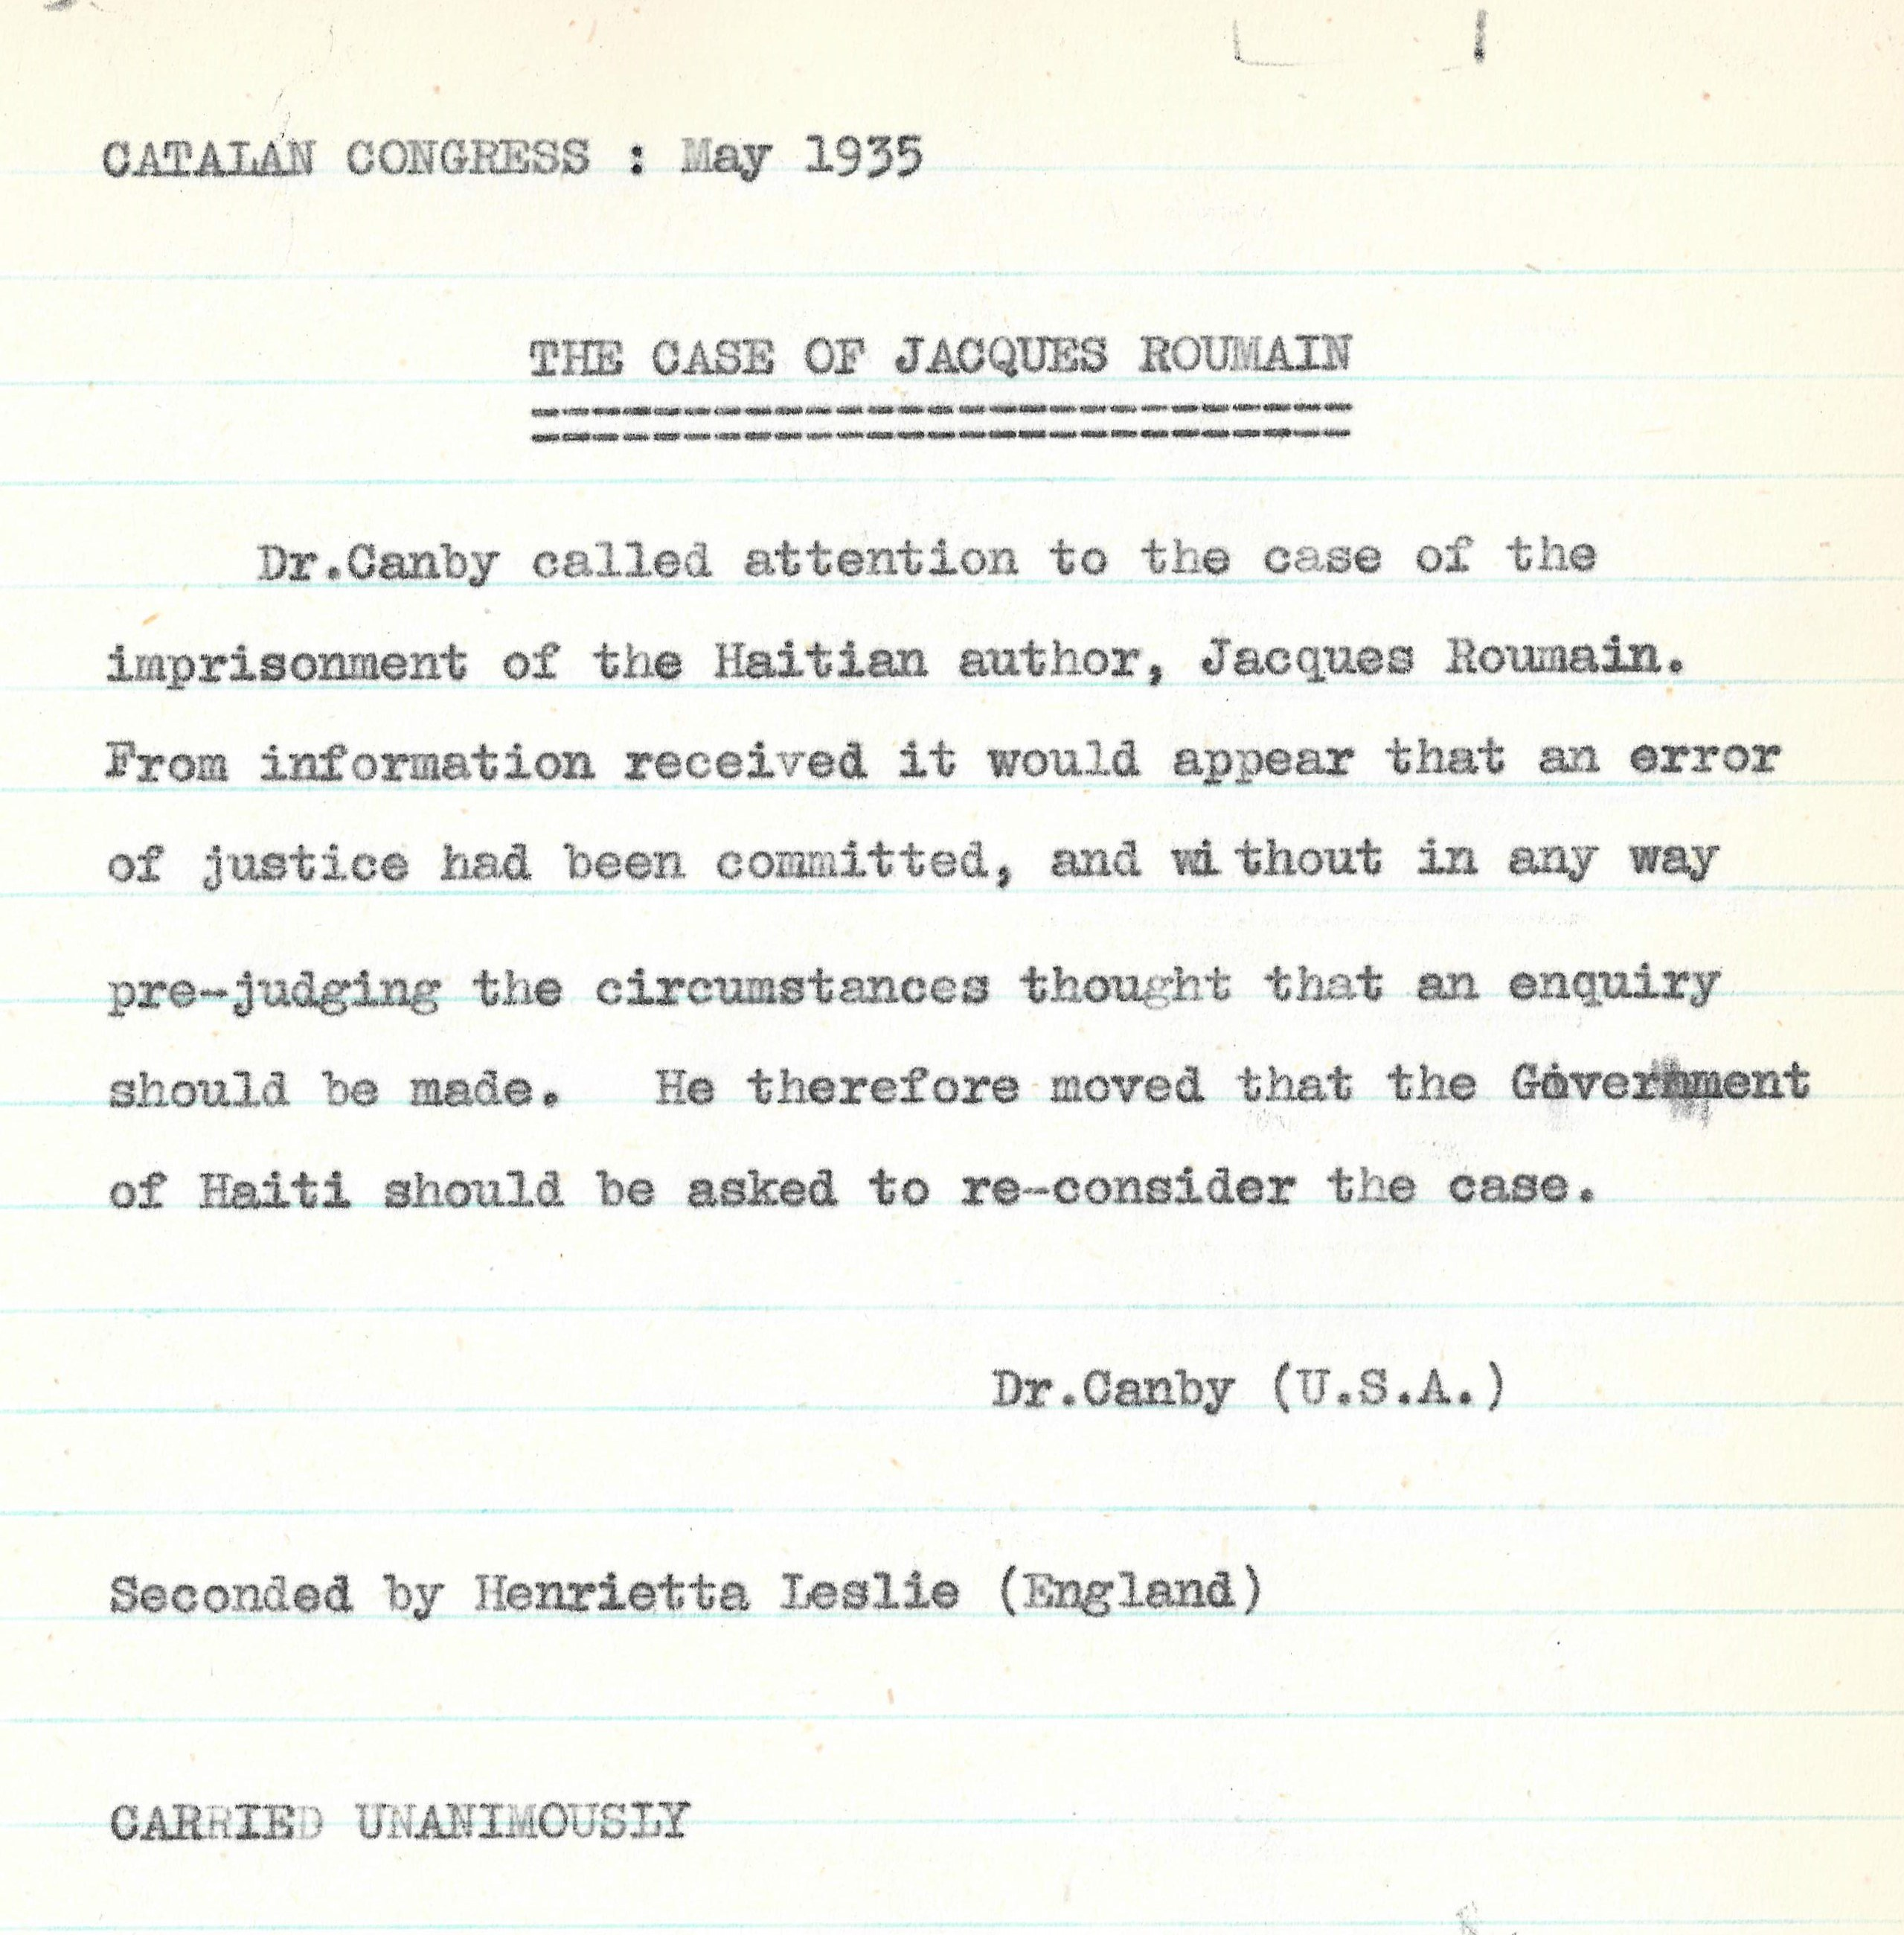 Resolution in defense of Jacques Roumain approved at the Barcelona 13th PEN International Congress in 1935.